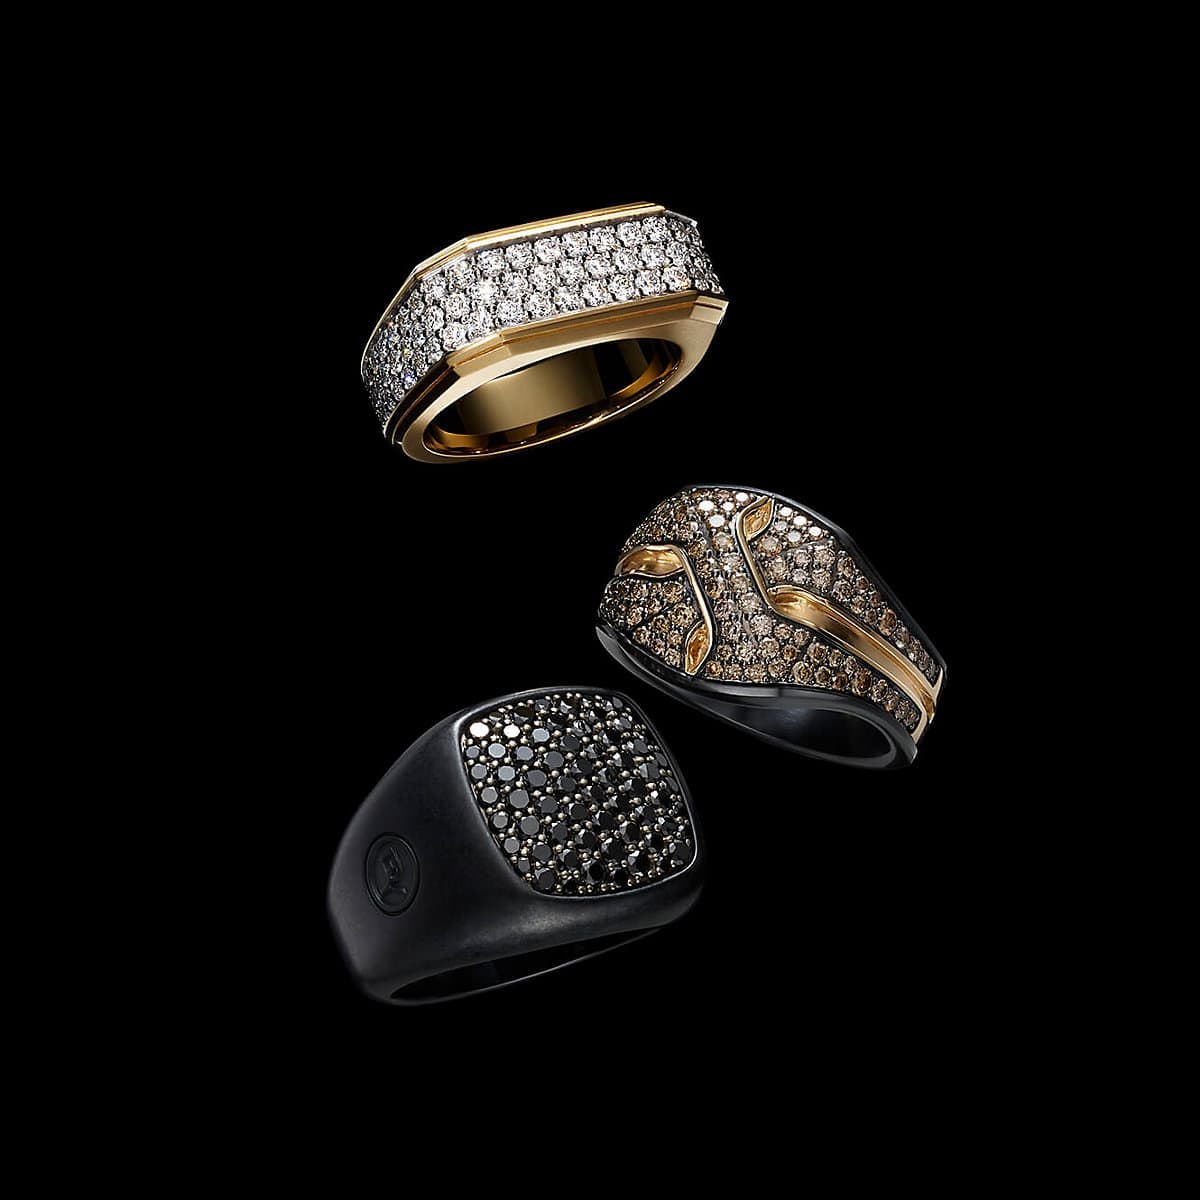 A color photo shows three David Yurman men's rings from the Pavé and Armory collections floating in front of a starry night sky. The top ring  is crafted from 18K yellow gold with white diamonds, and the middle ring is crafted from black titanium with 18K rose gold and cognac diamonds. The final ring is crafted from black titanium with black diamonds.